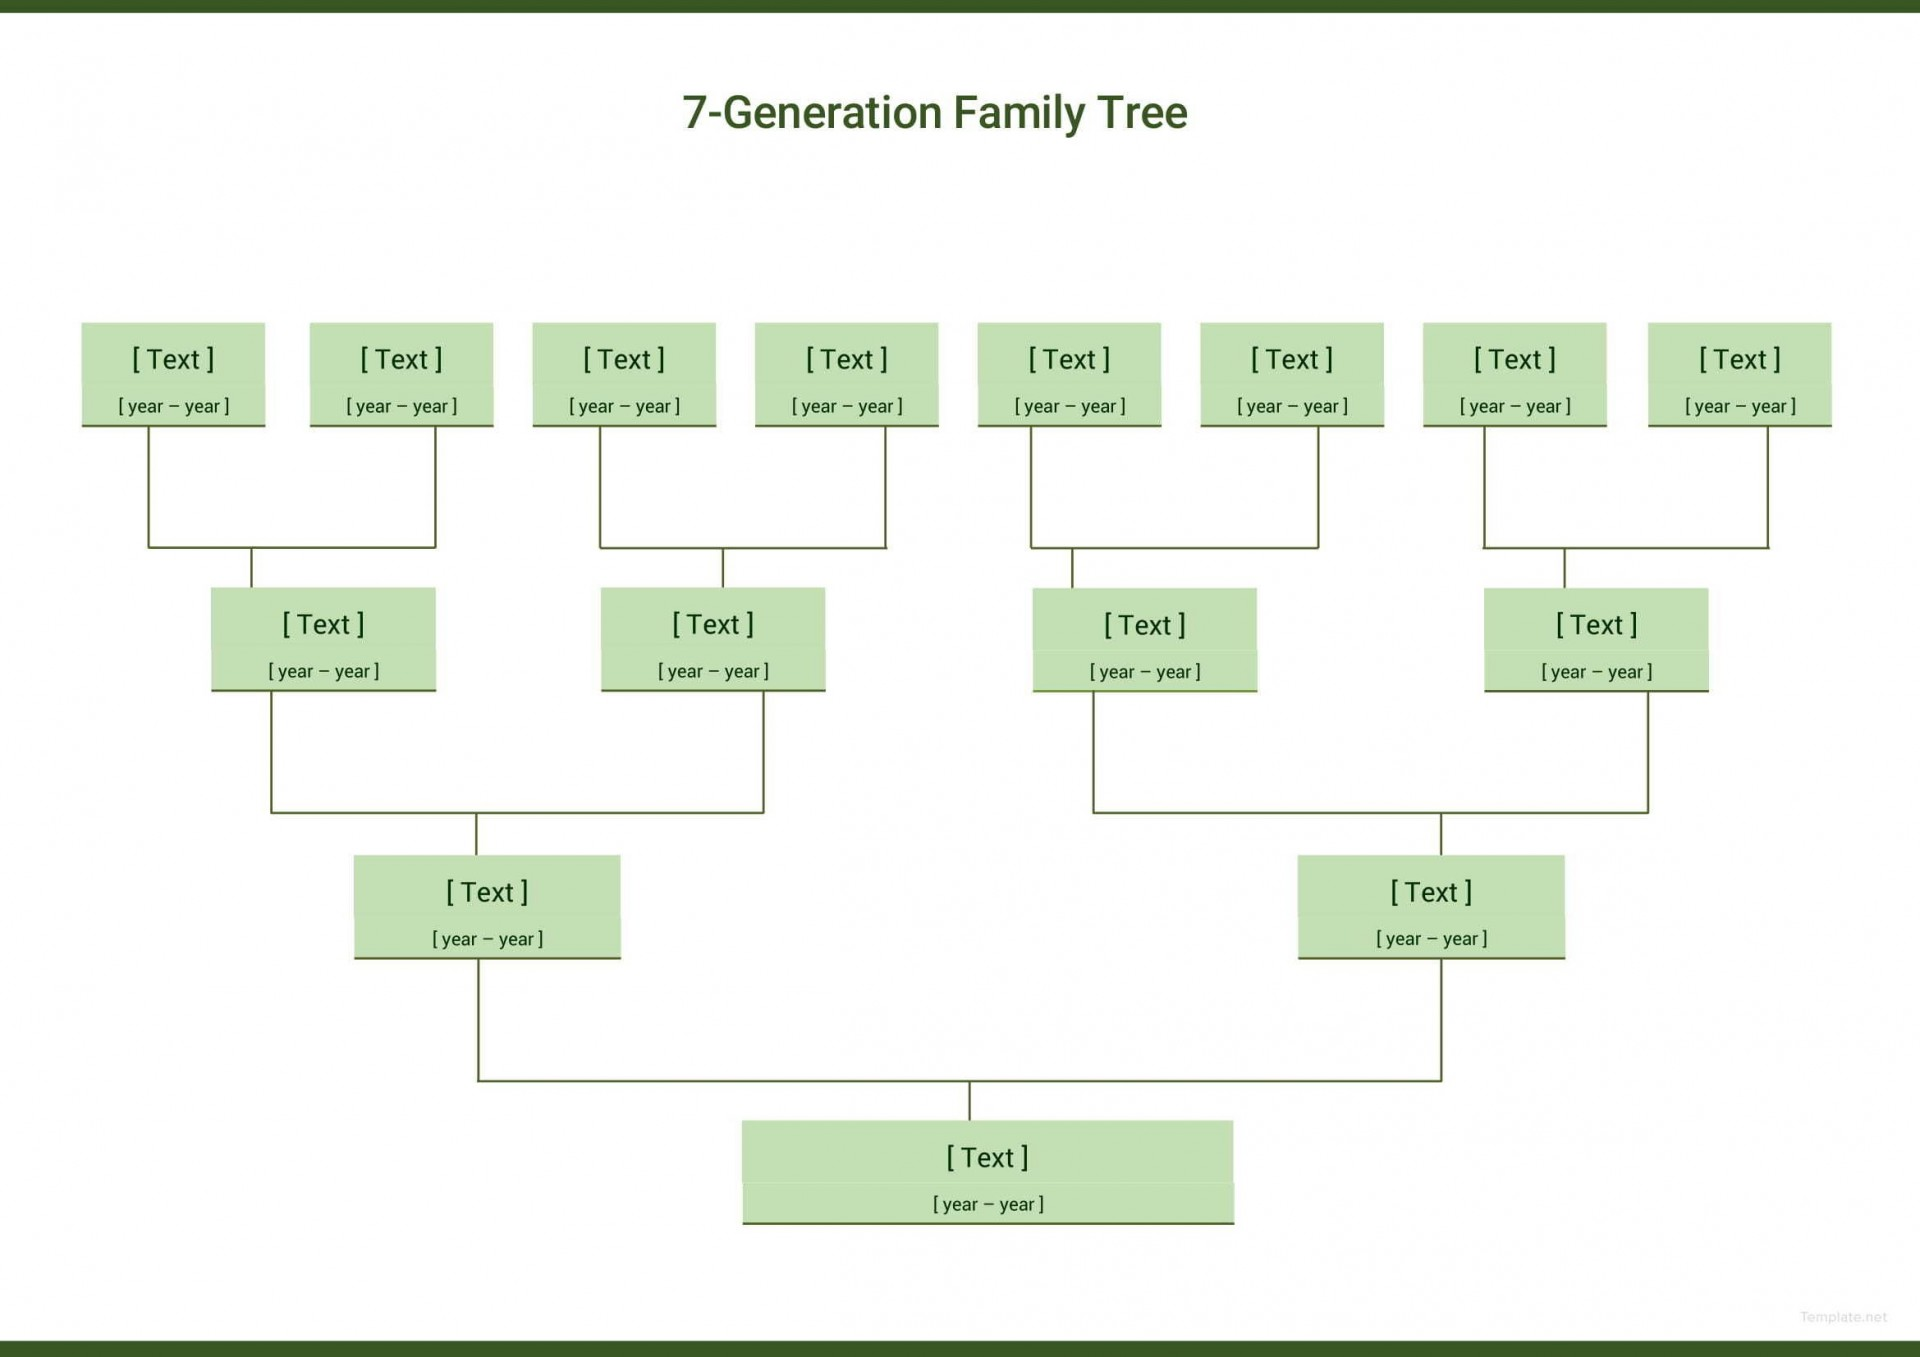 007 Staggering 7 Generation Family Tree Template High Def  Blank Free Editable1920